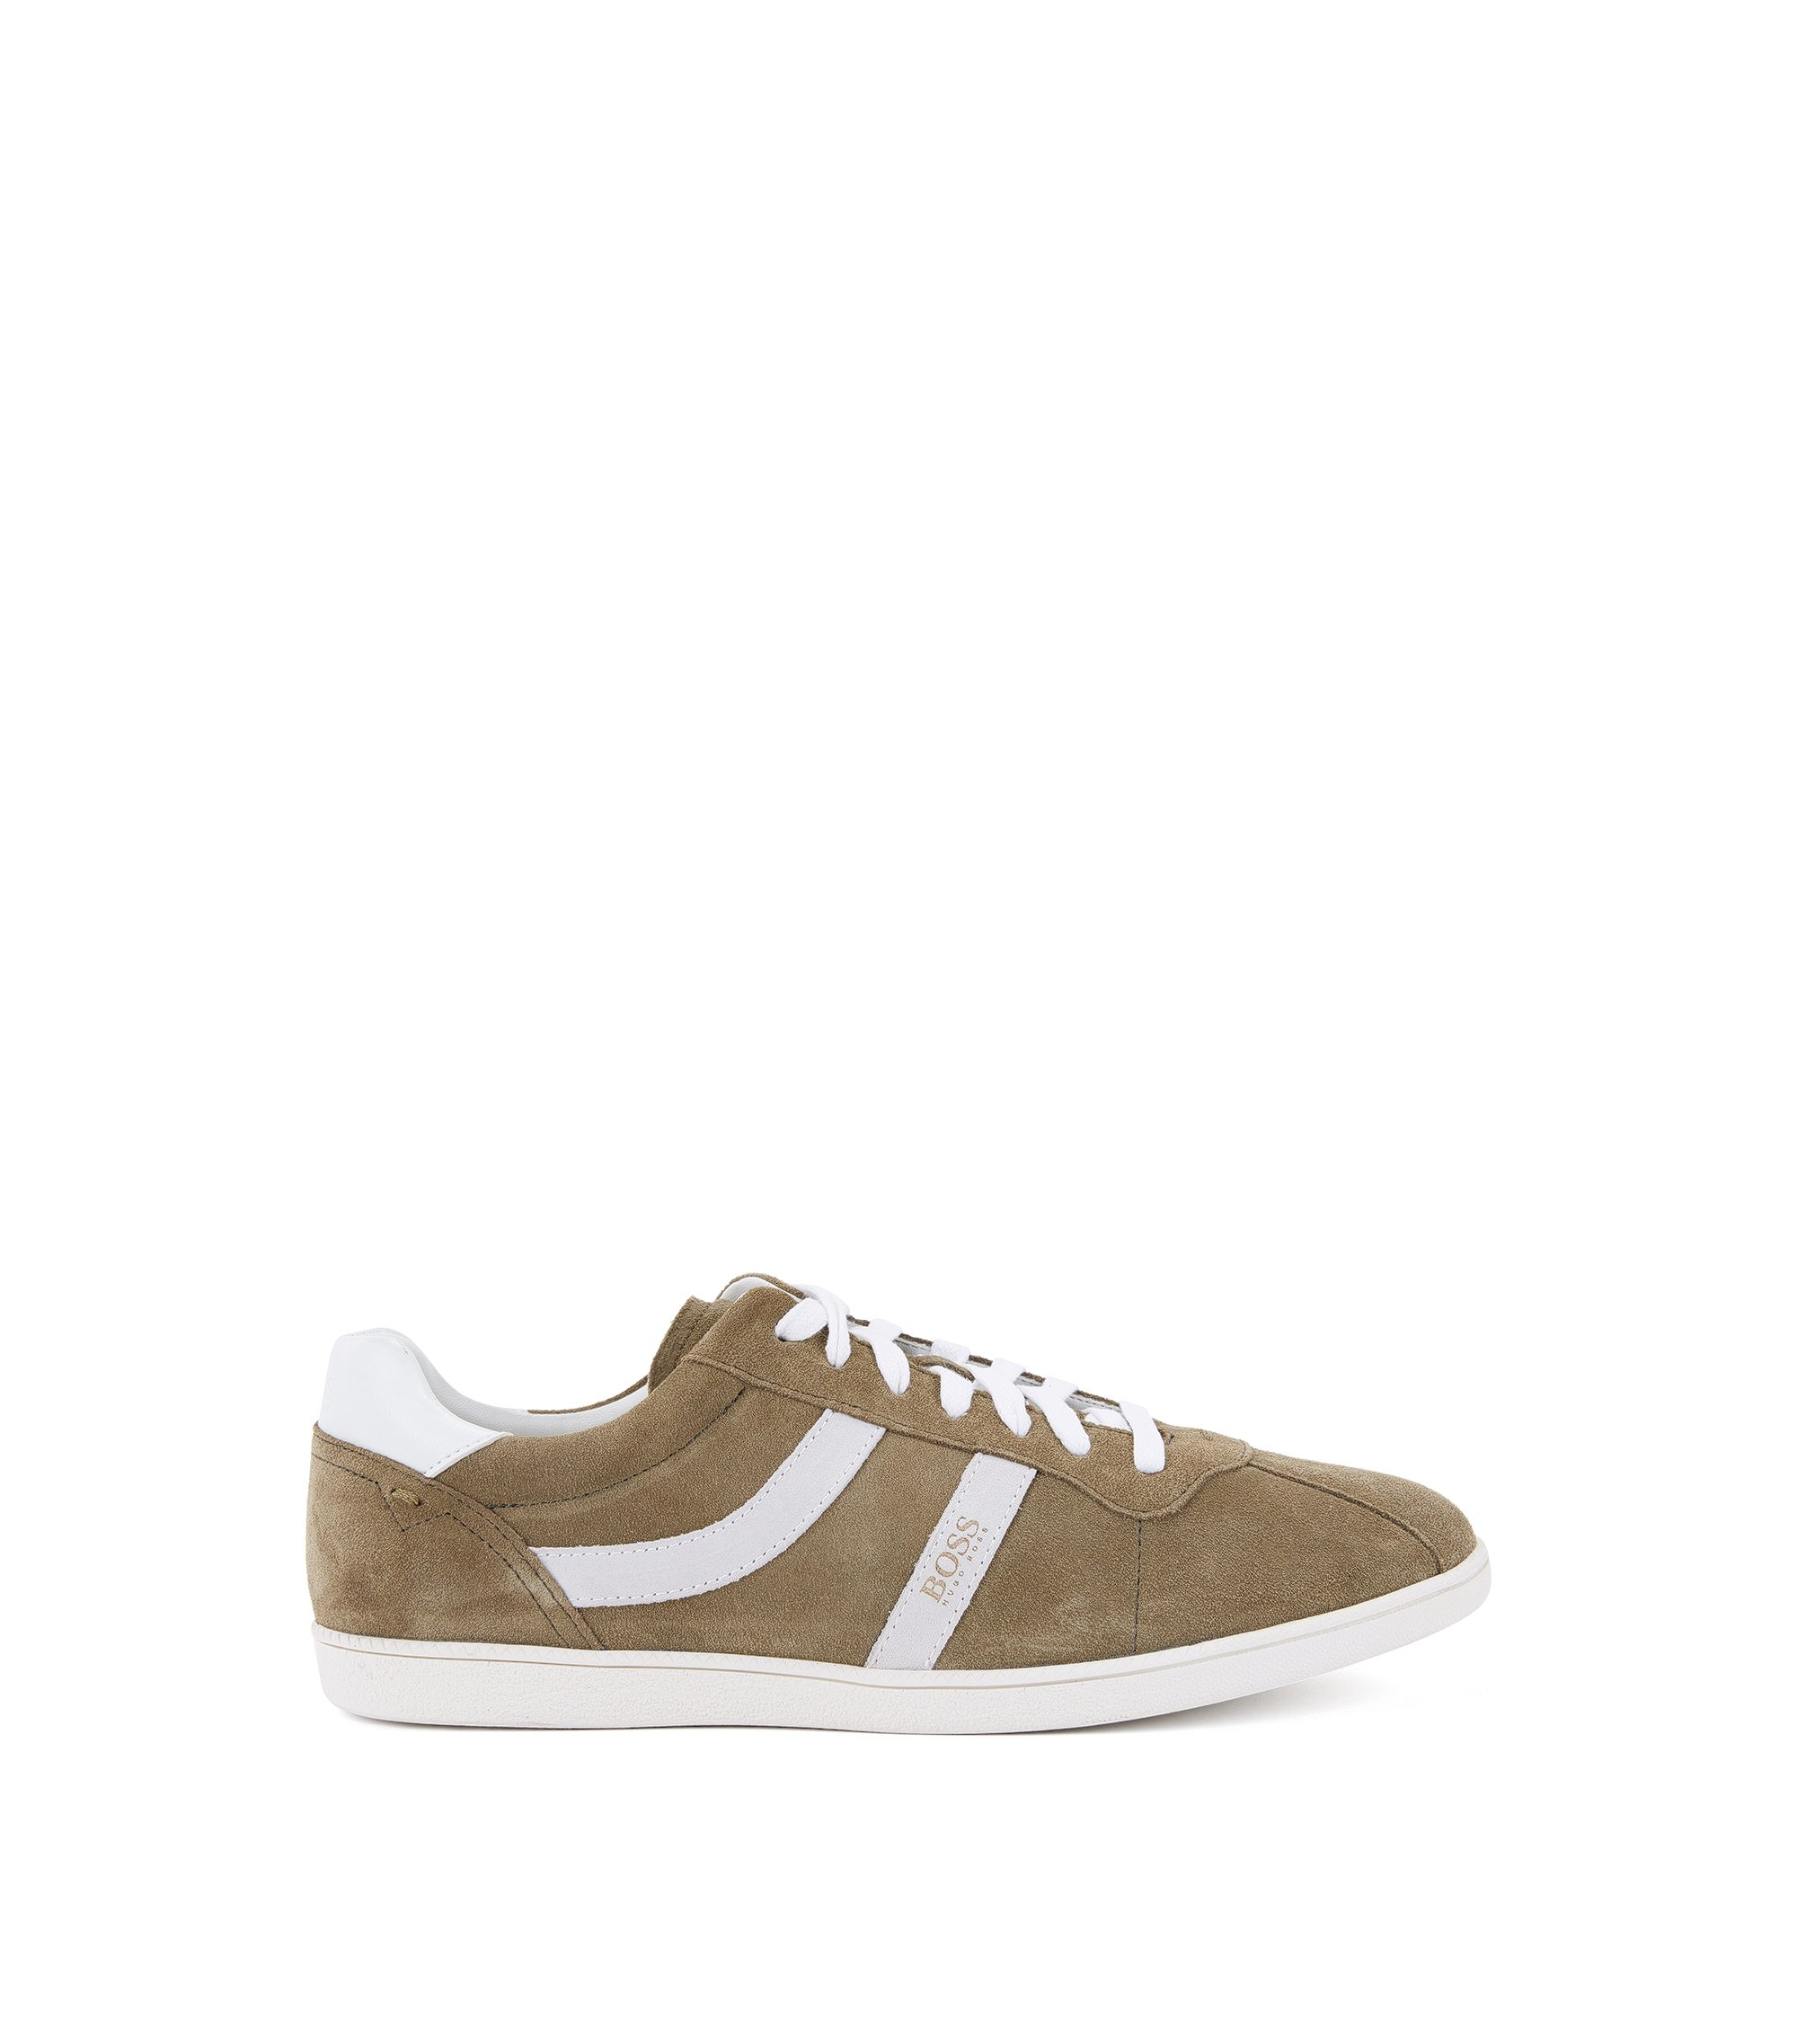 Suede Sneaker | Rumba Tenn Sd, Green